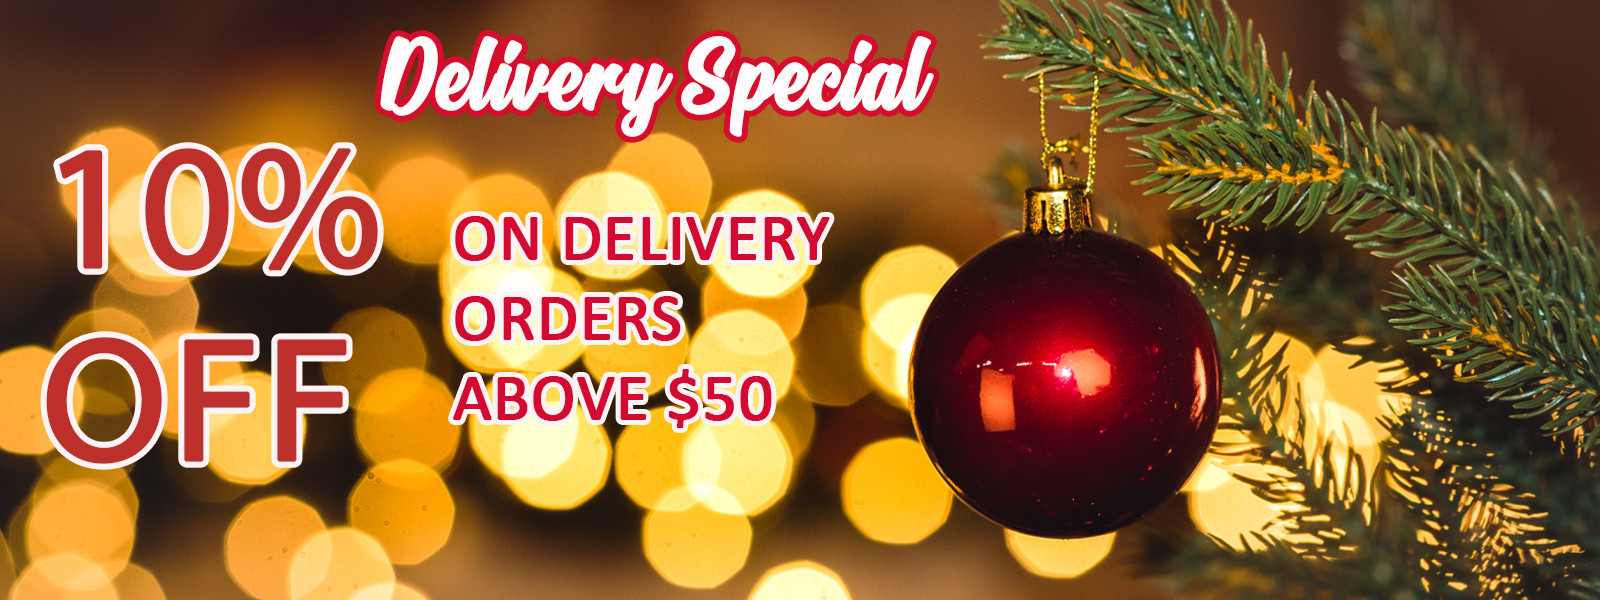 Specials Holiday 10 Delivery Offer En